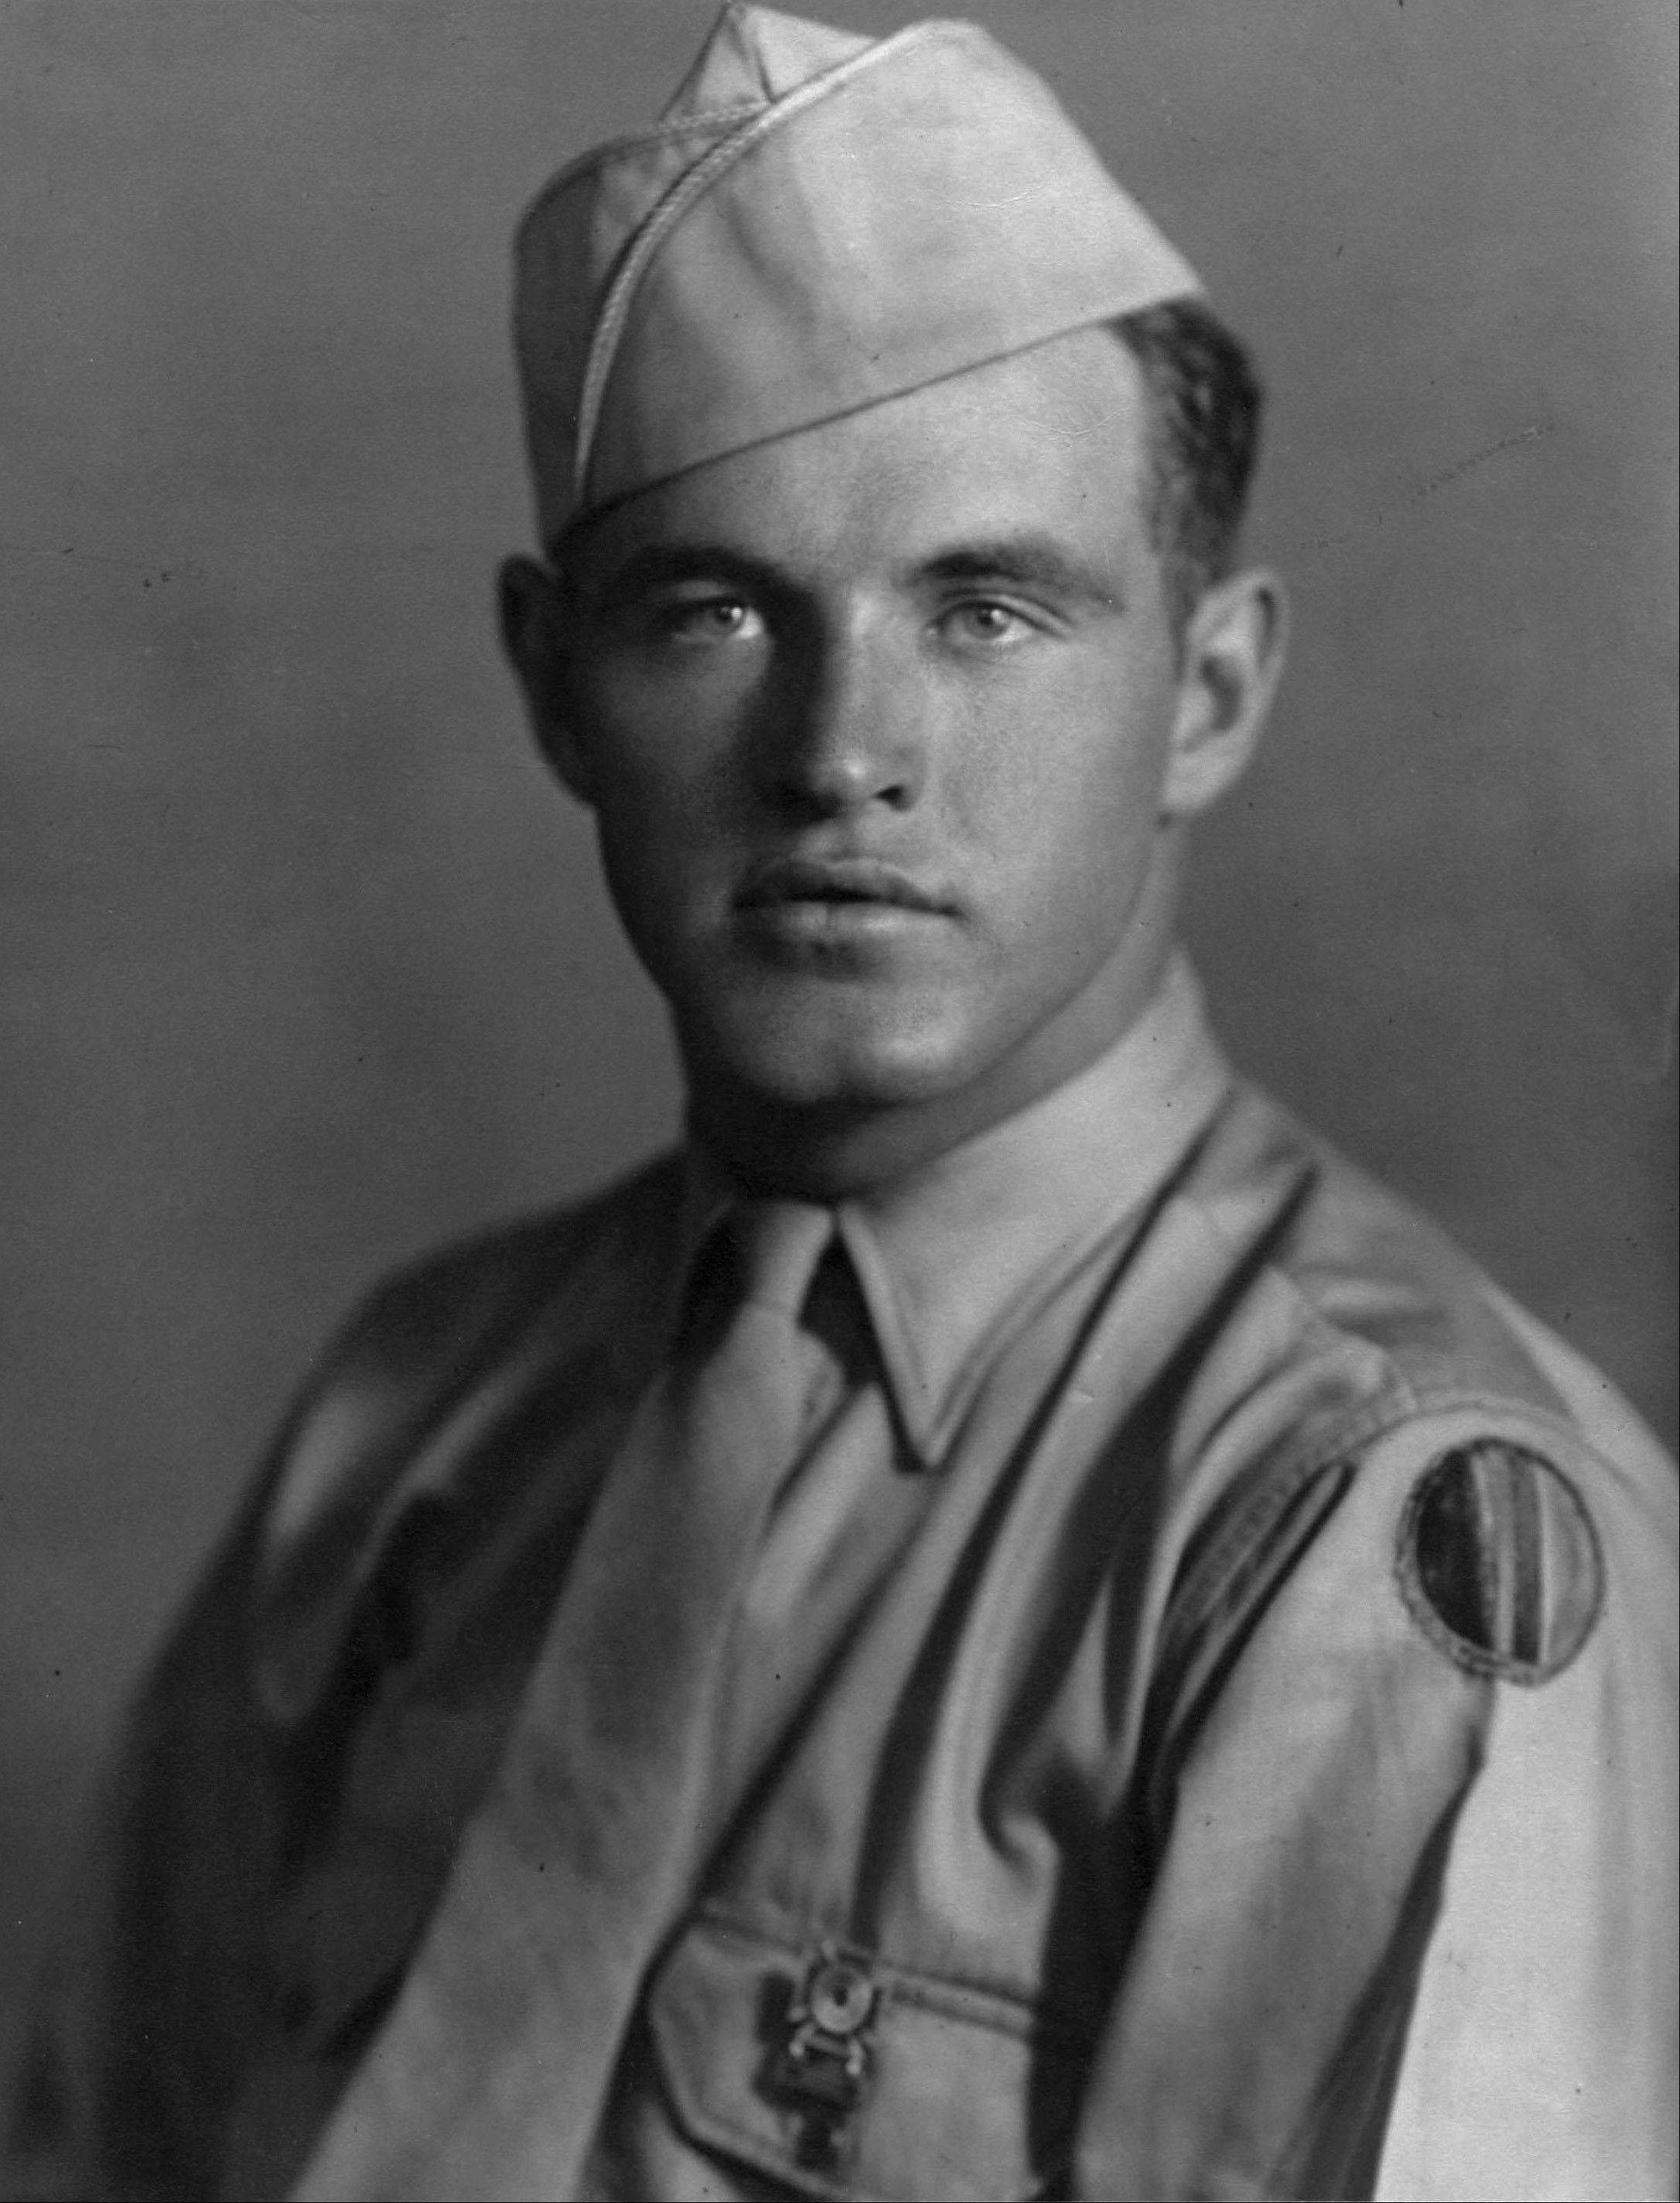 This World War II-era photo provided by the family shows James Capps in uniform.